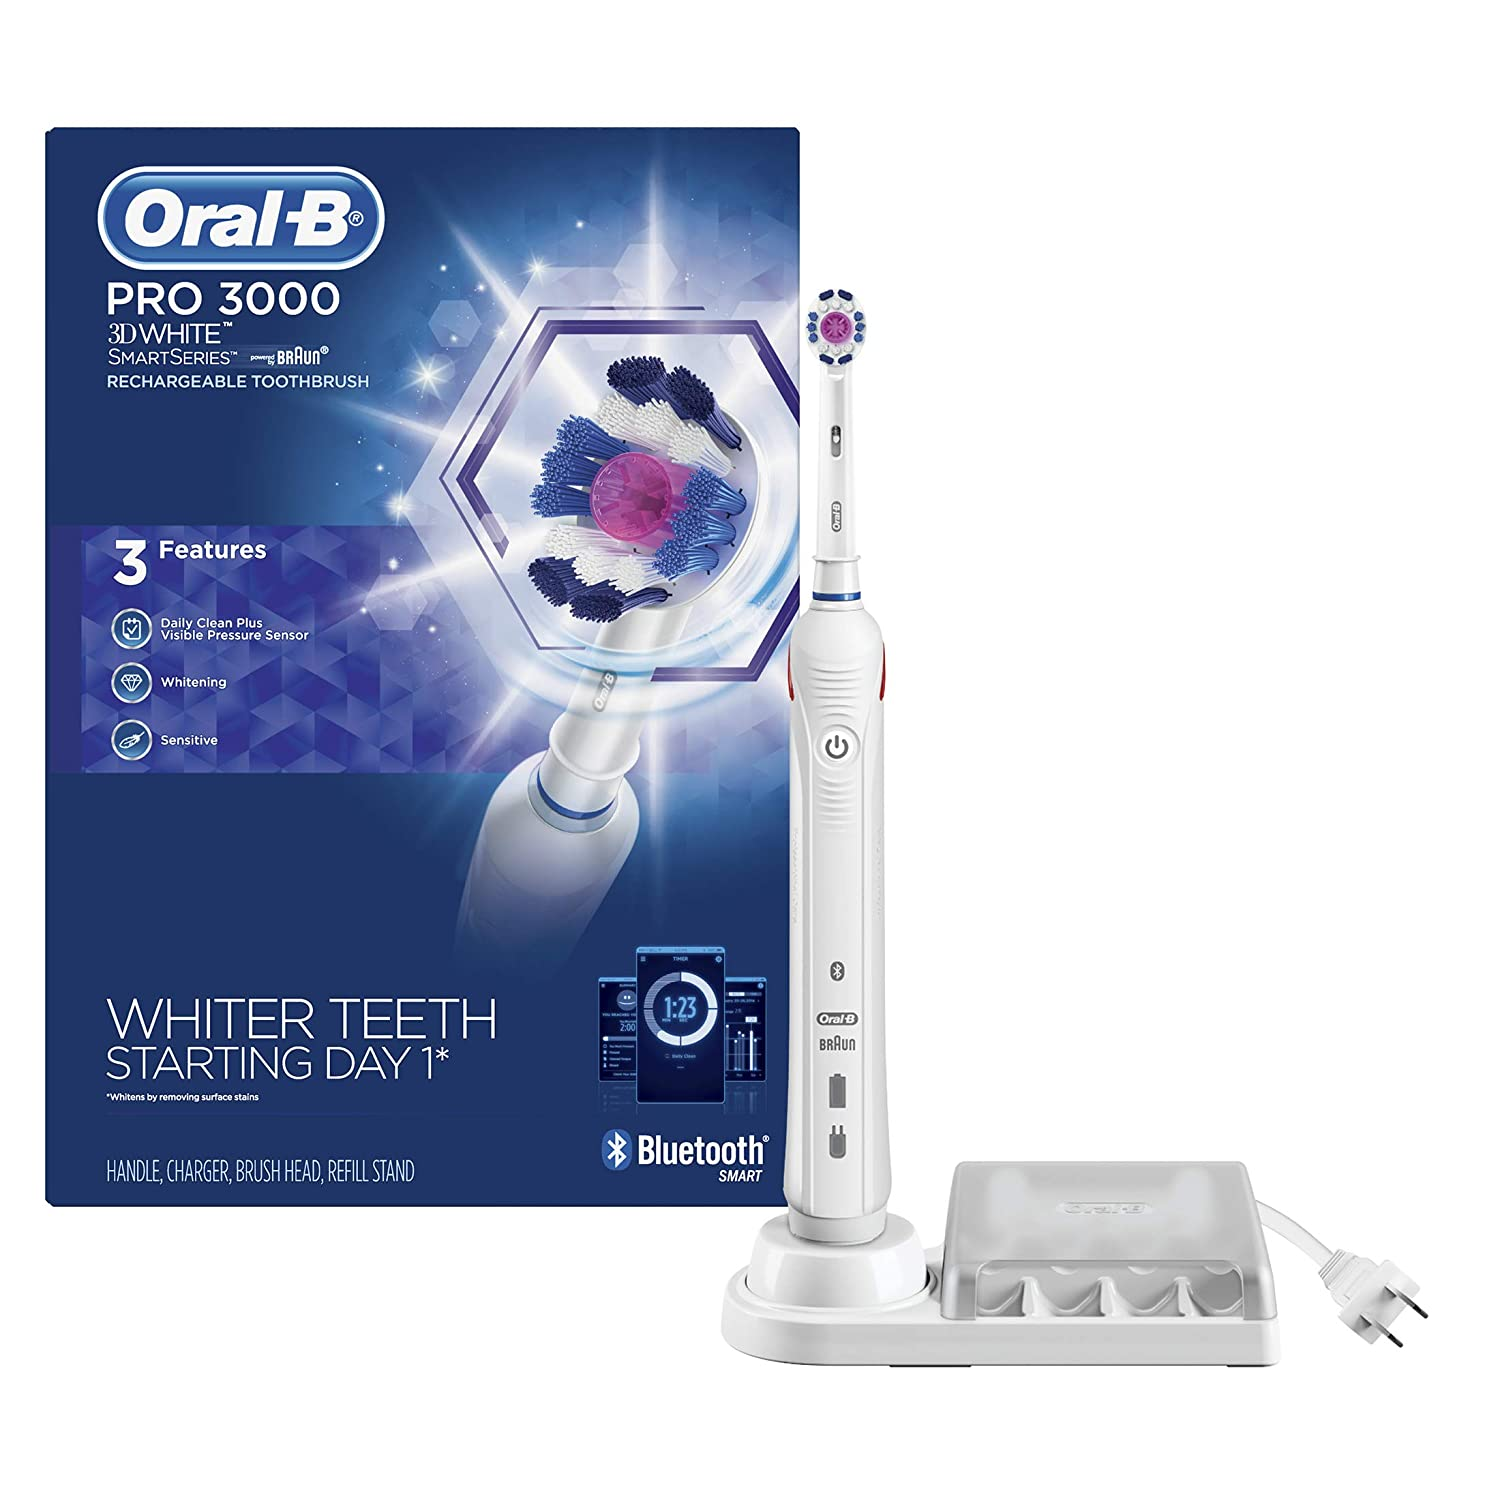 Top 10 Best Electric Toothbrush (2020 Review & Buying Guide) 7